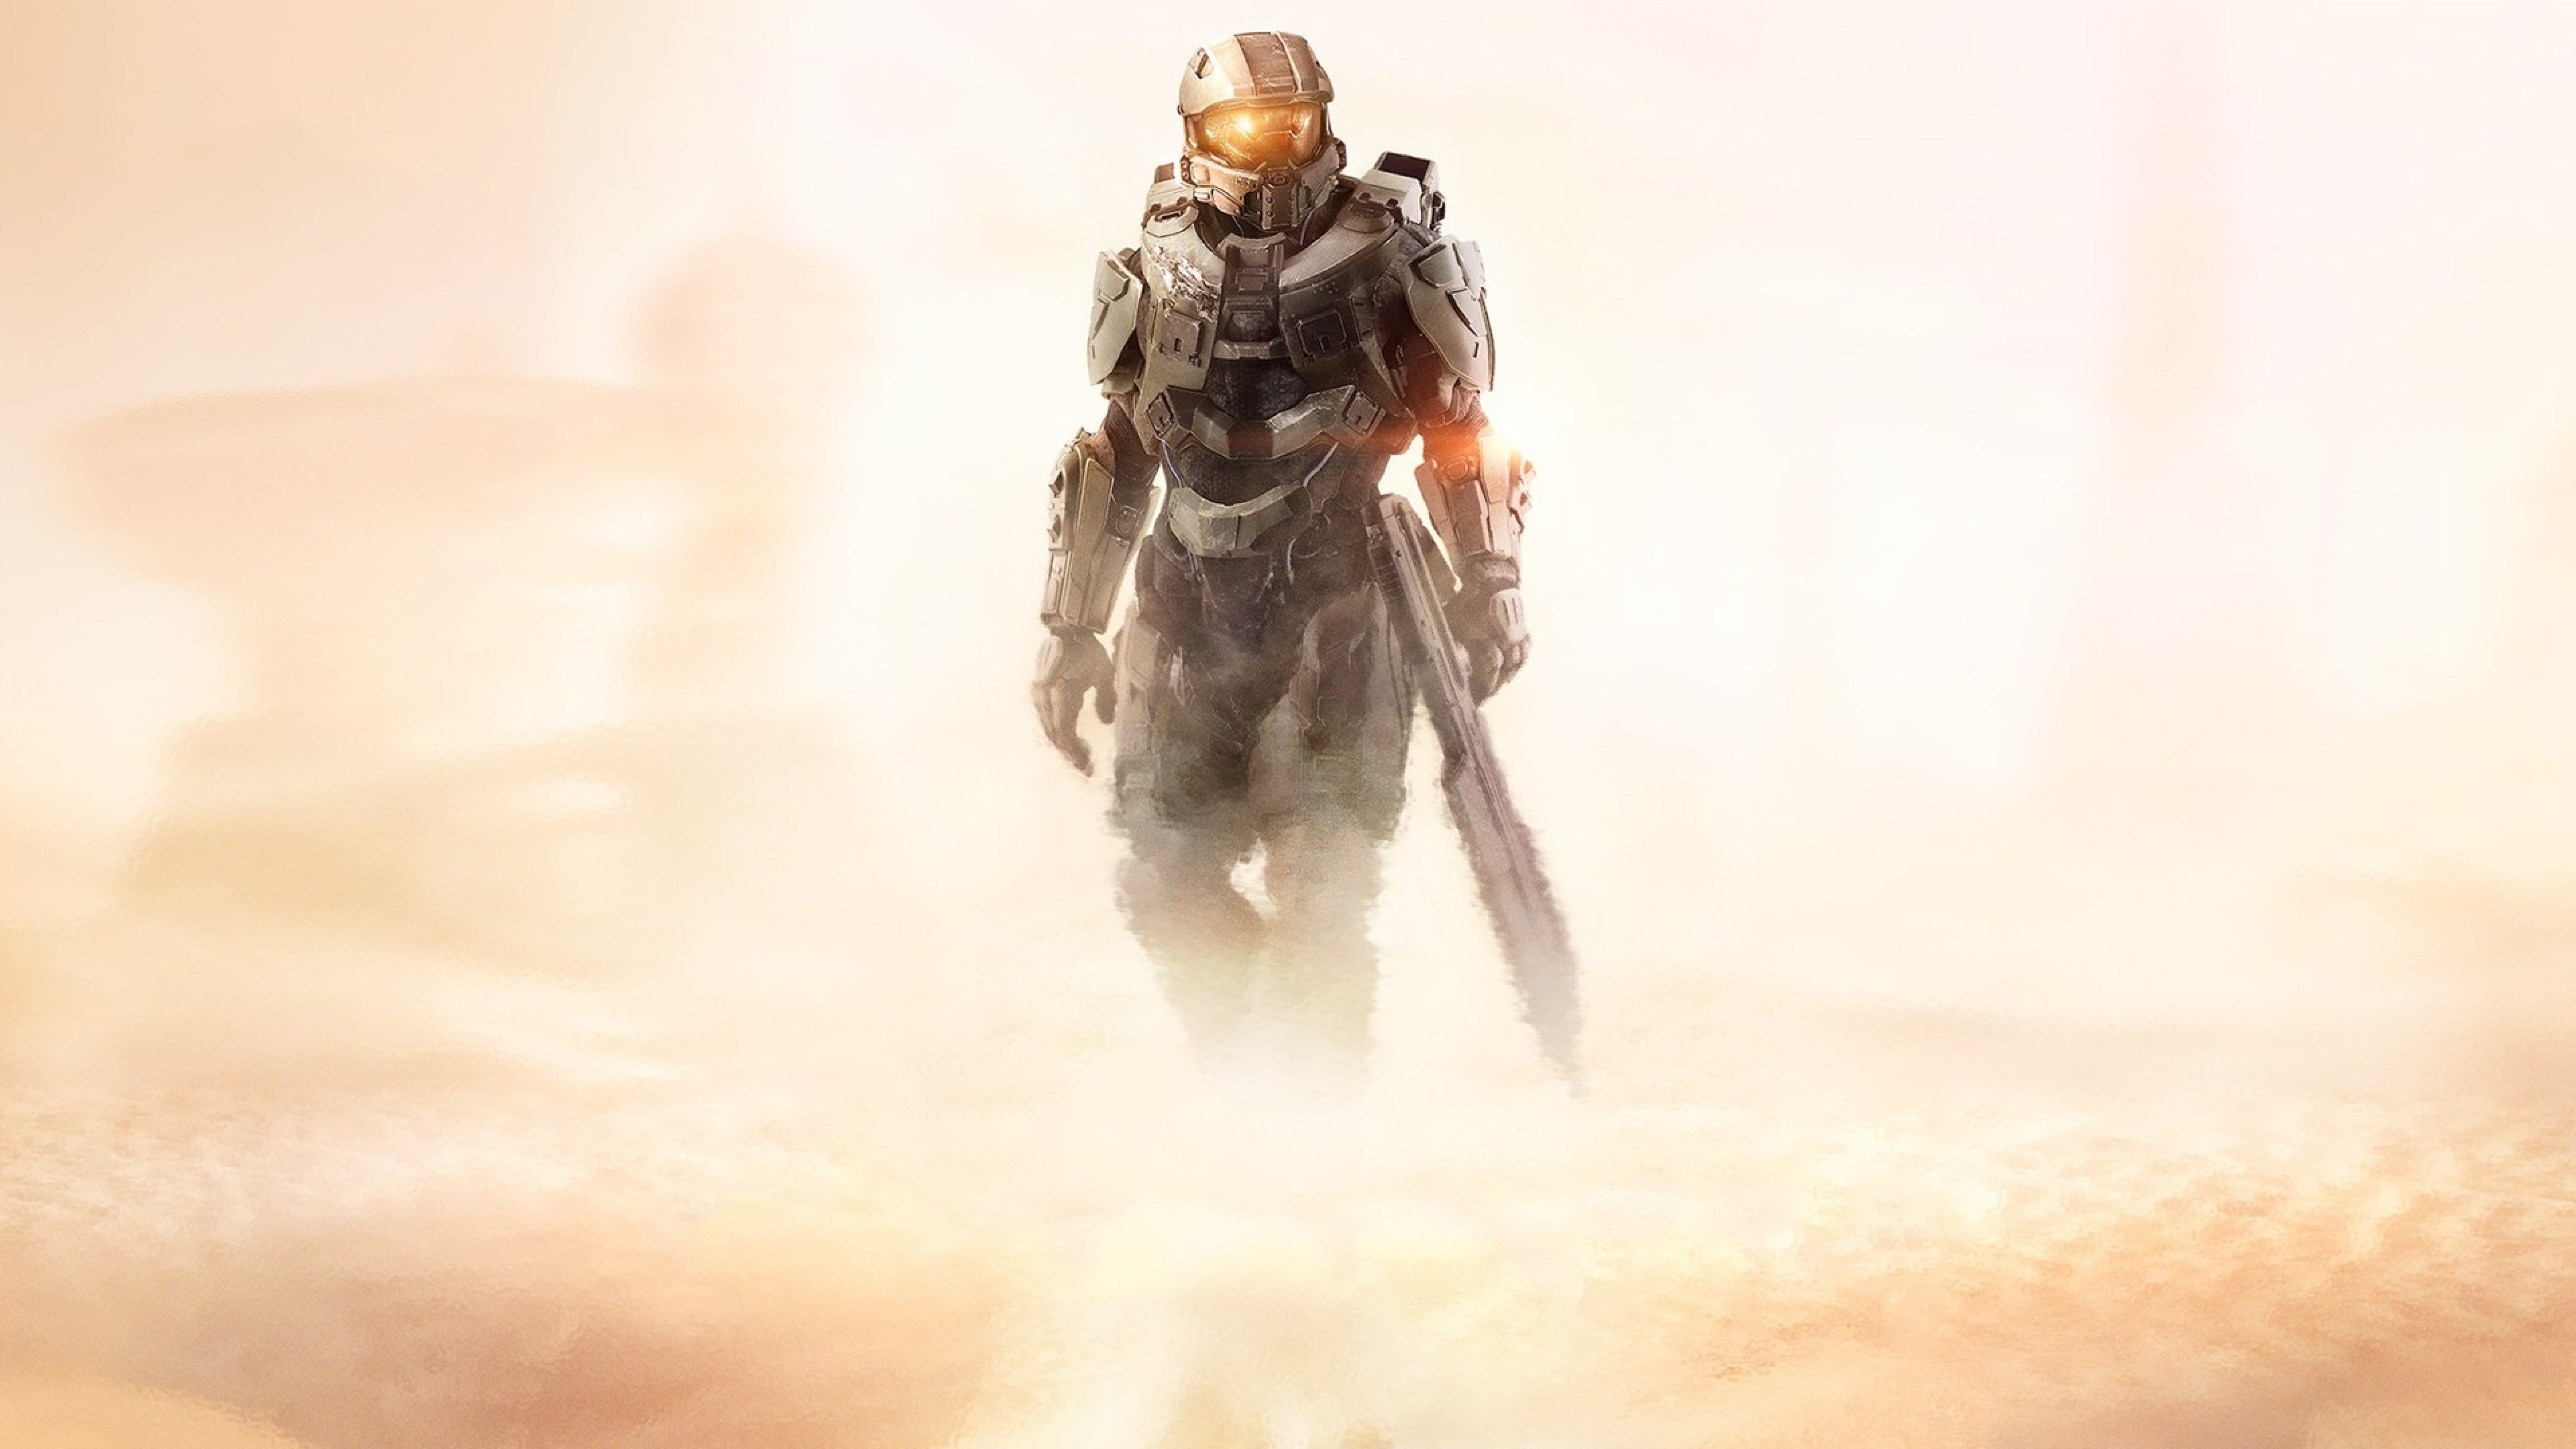 3840x2160 Preview wallpaper halo 5, guardians, master chief, john, halo